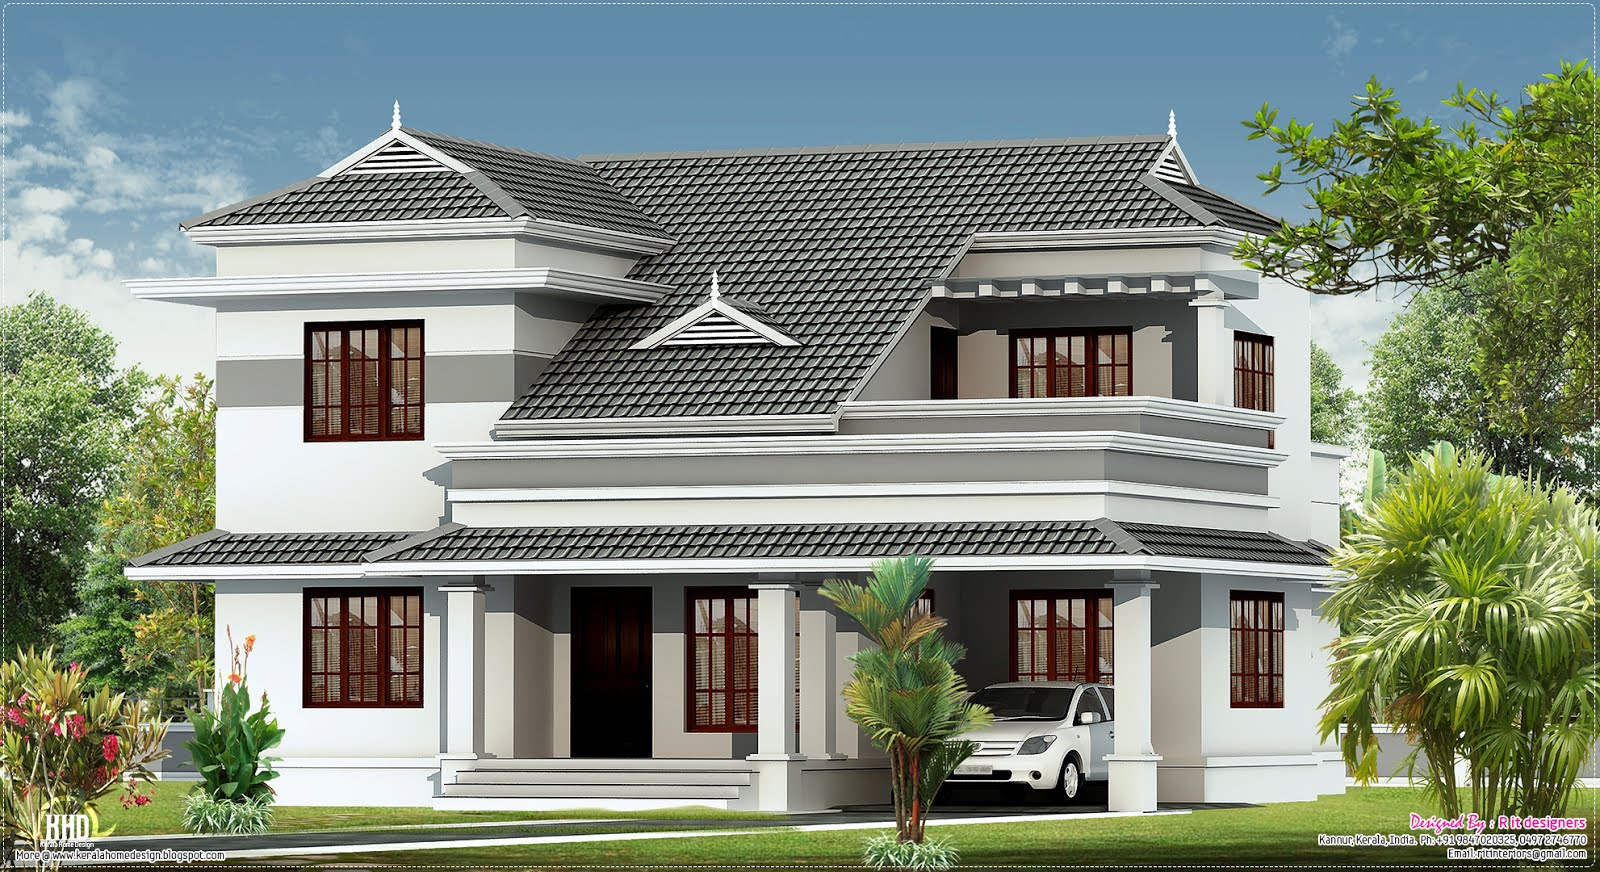 New villa design in 2250 kerala home design and for New home designs